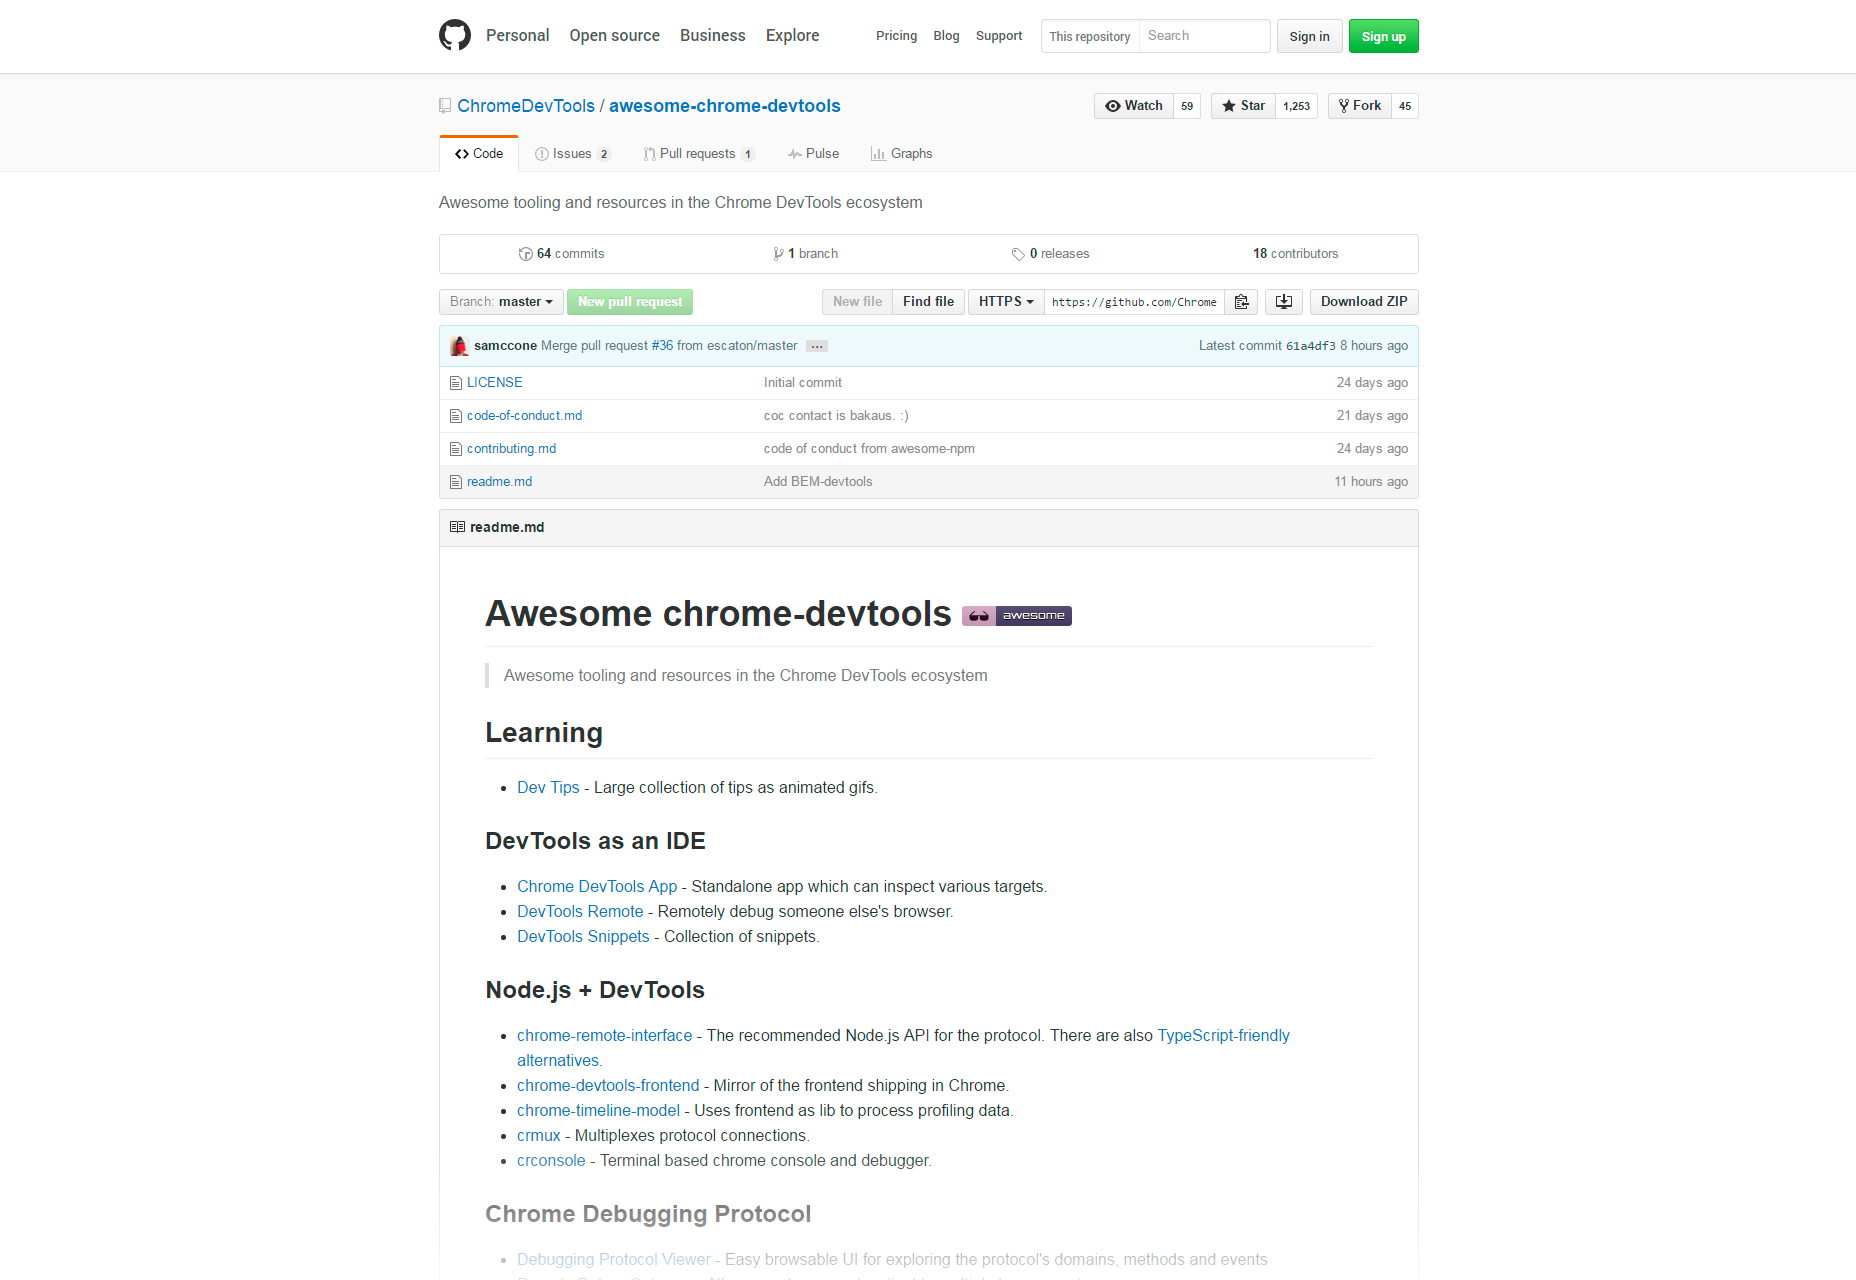 awesome-chrome-development-tools-resources-